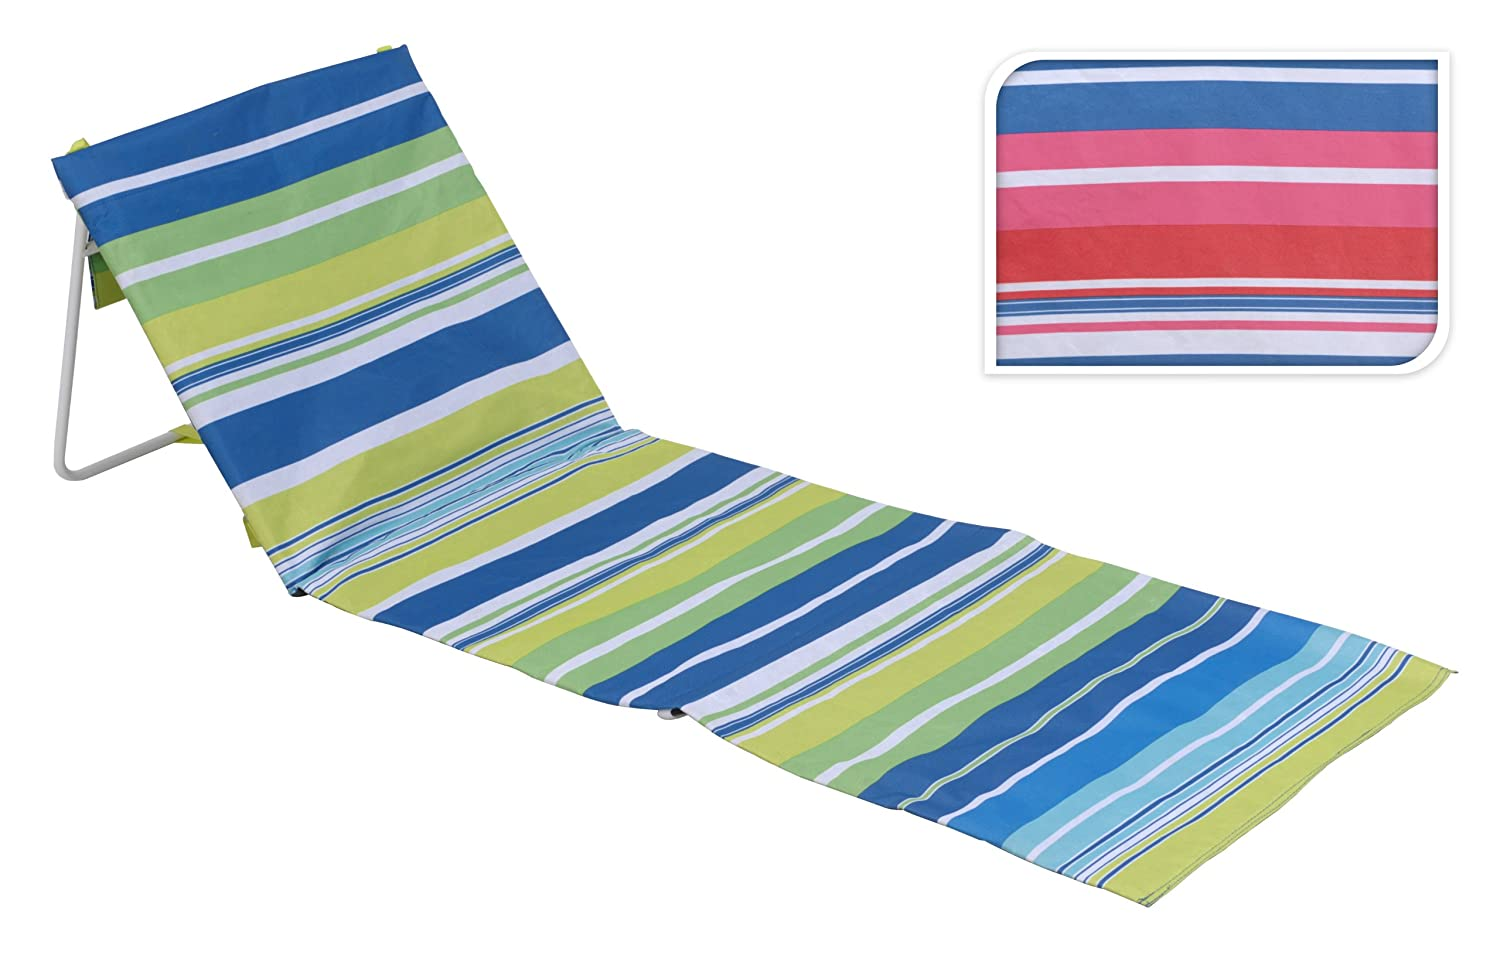 Top 10 Best Beach Chairs For Summer 20162017 on Flipboard – Deluxe Beach Chairs